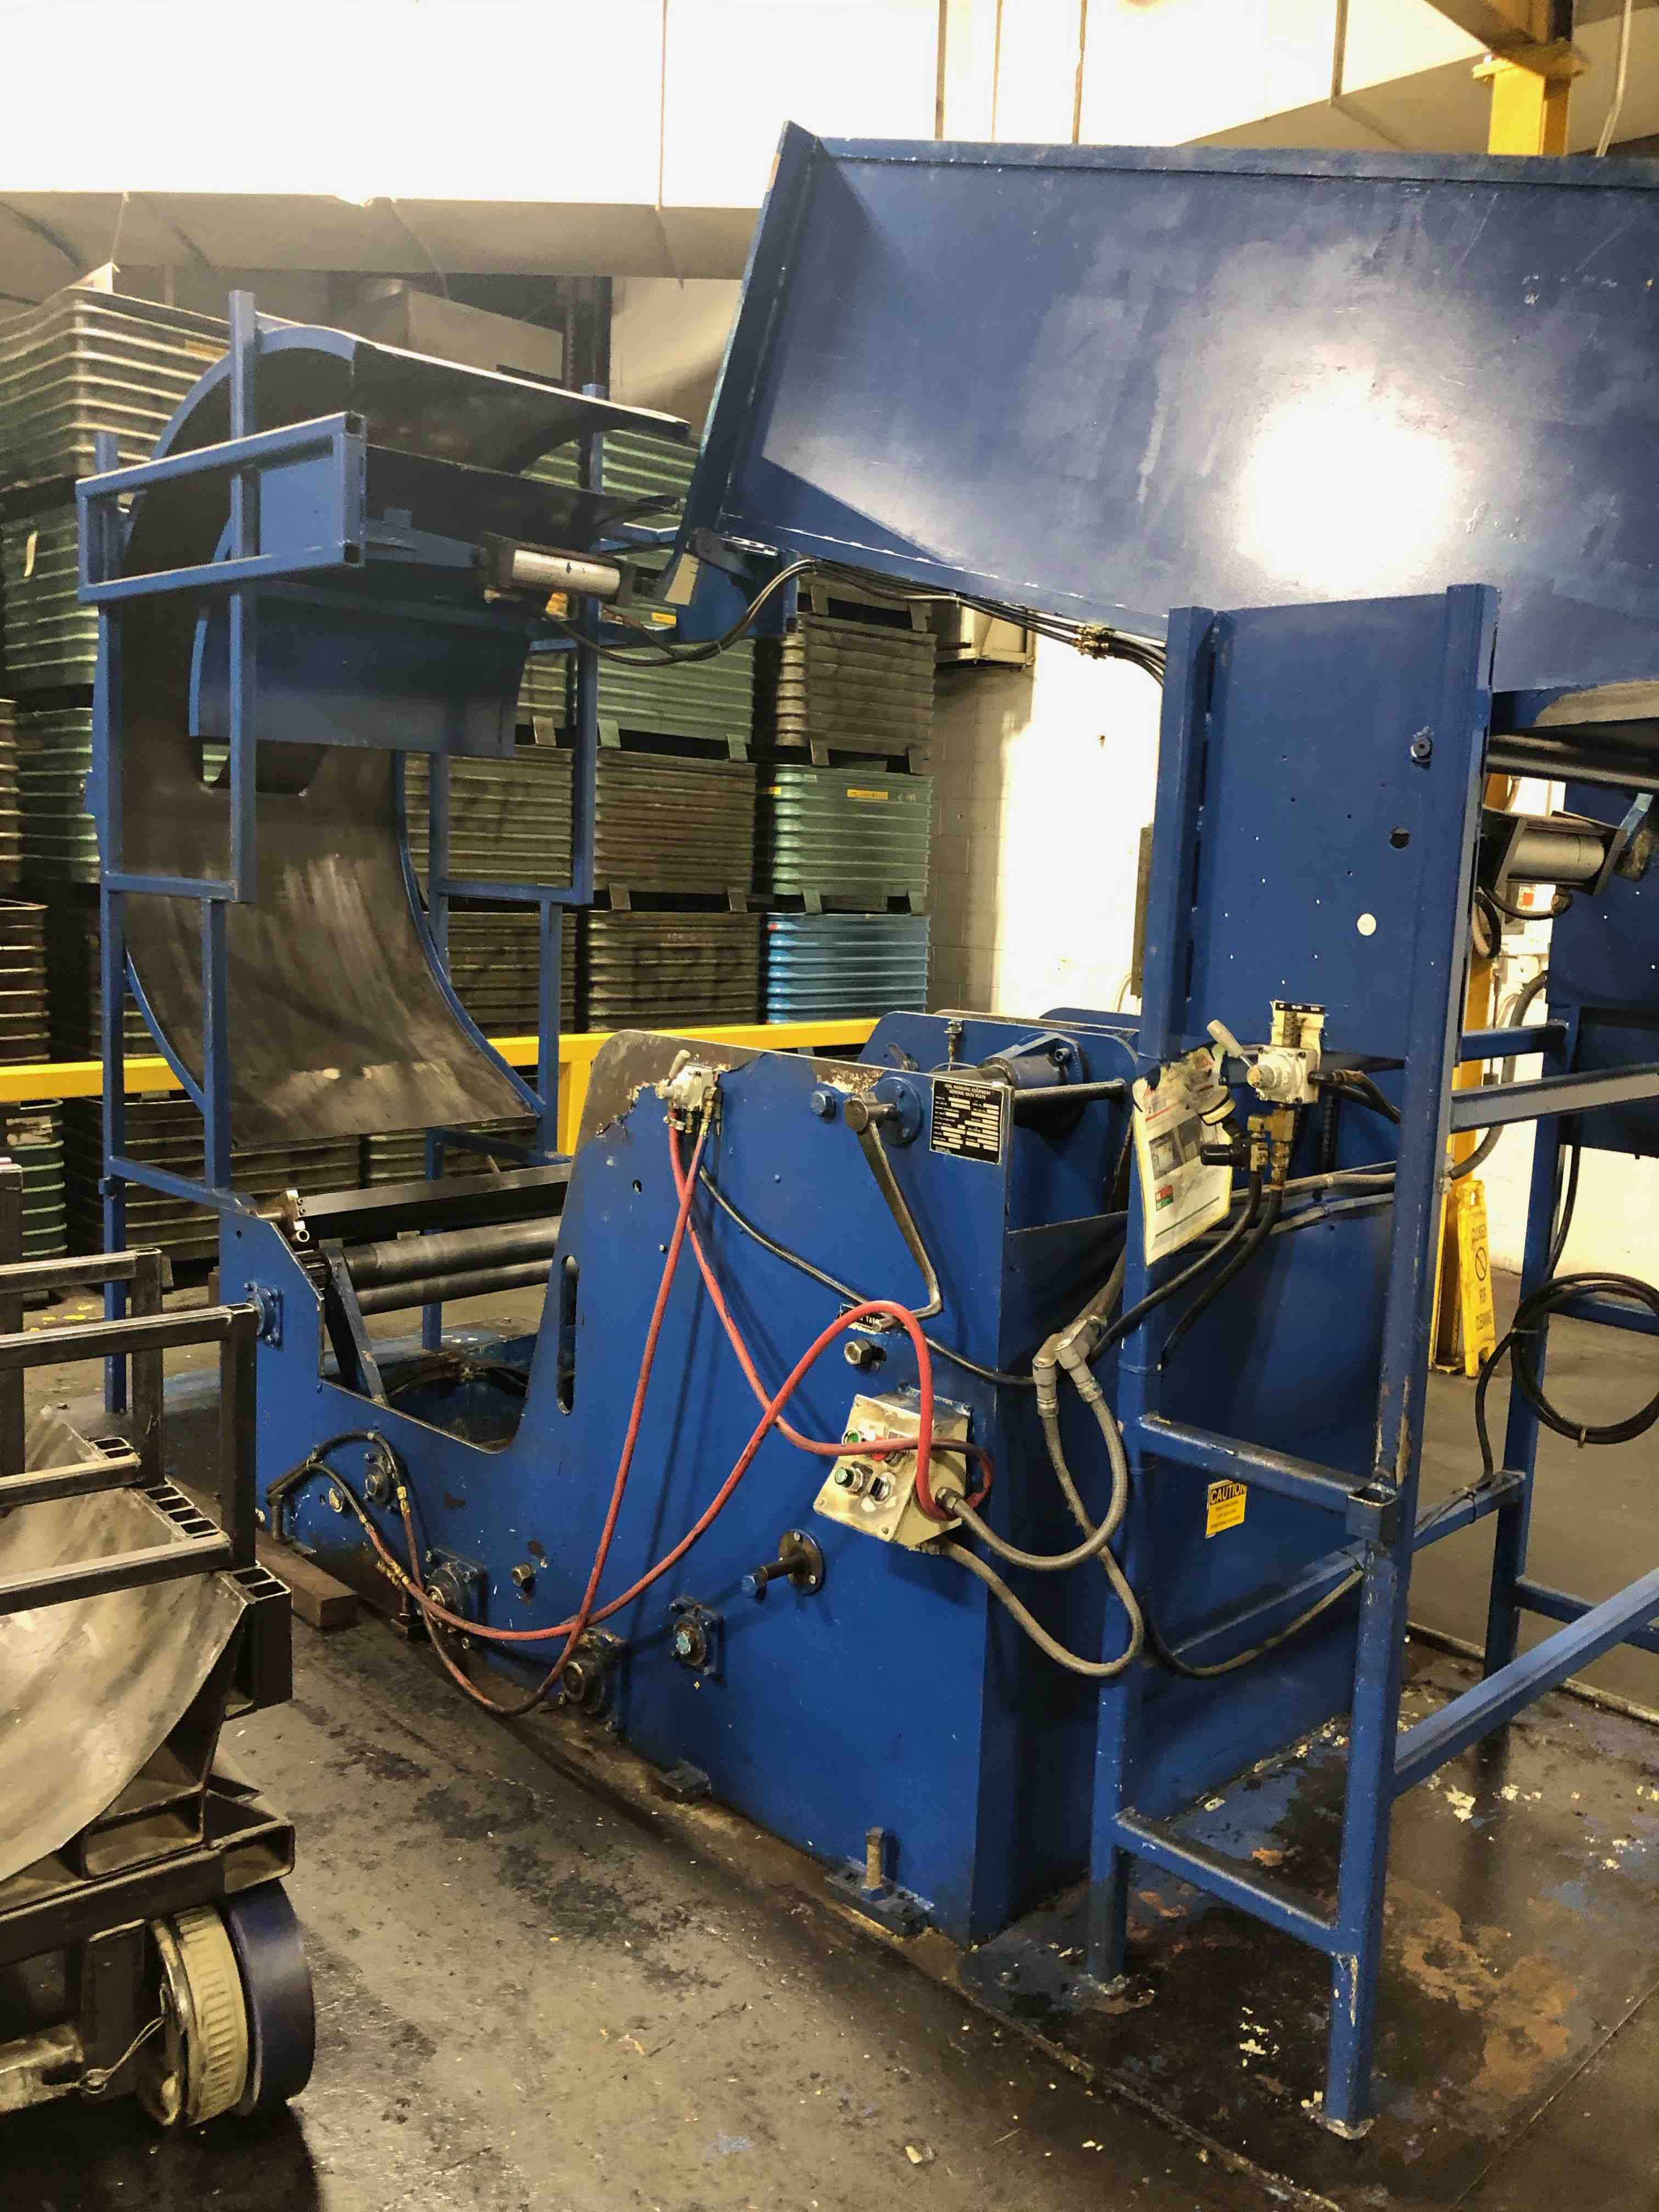 "36"" W X 10,000 LBS X .125"" CWP COIL FEED LINE, COIL CRADLE MODEL C100-36, 36"" W CWP STRAIGHTENER / SERVO FEEDER MODEL SMX36DSF11"